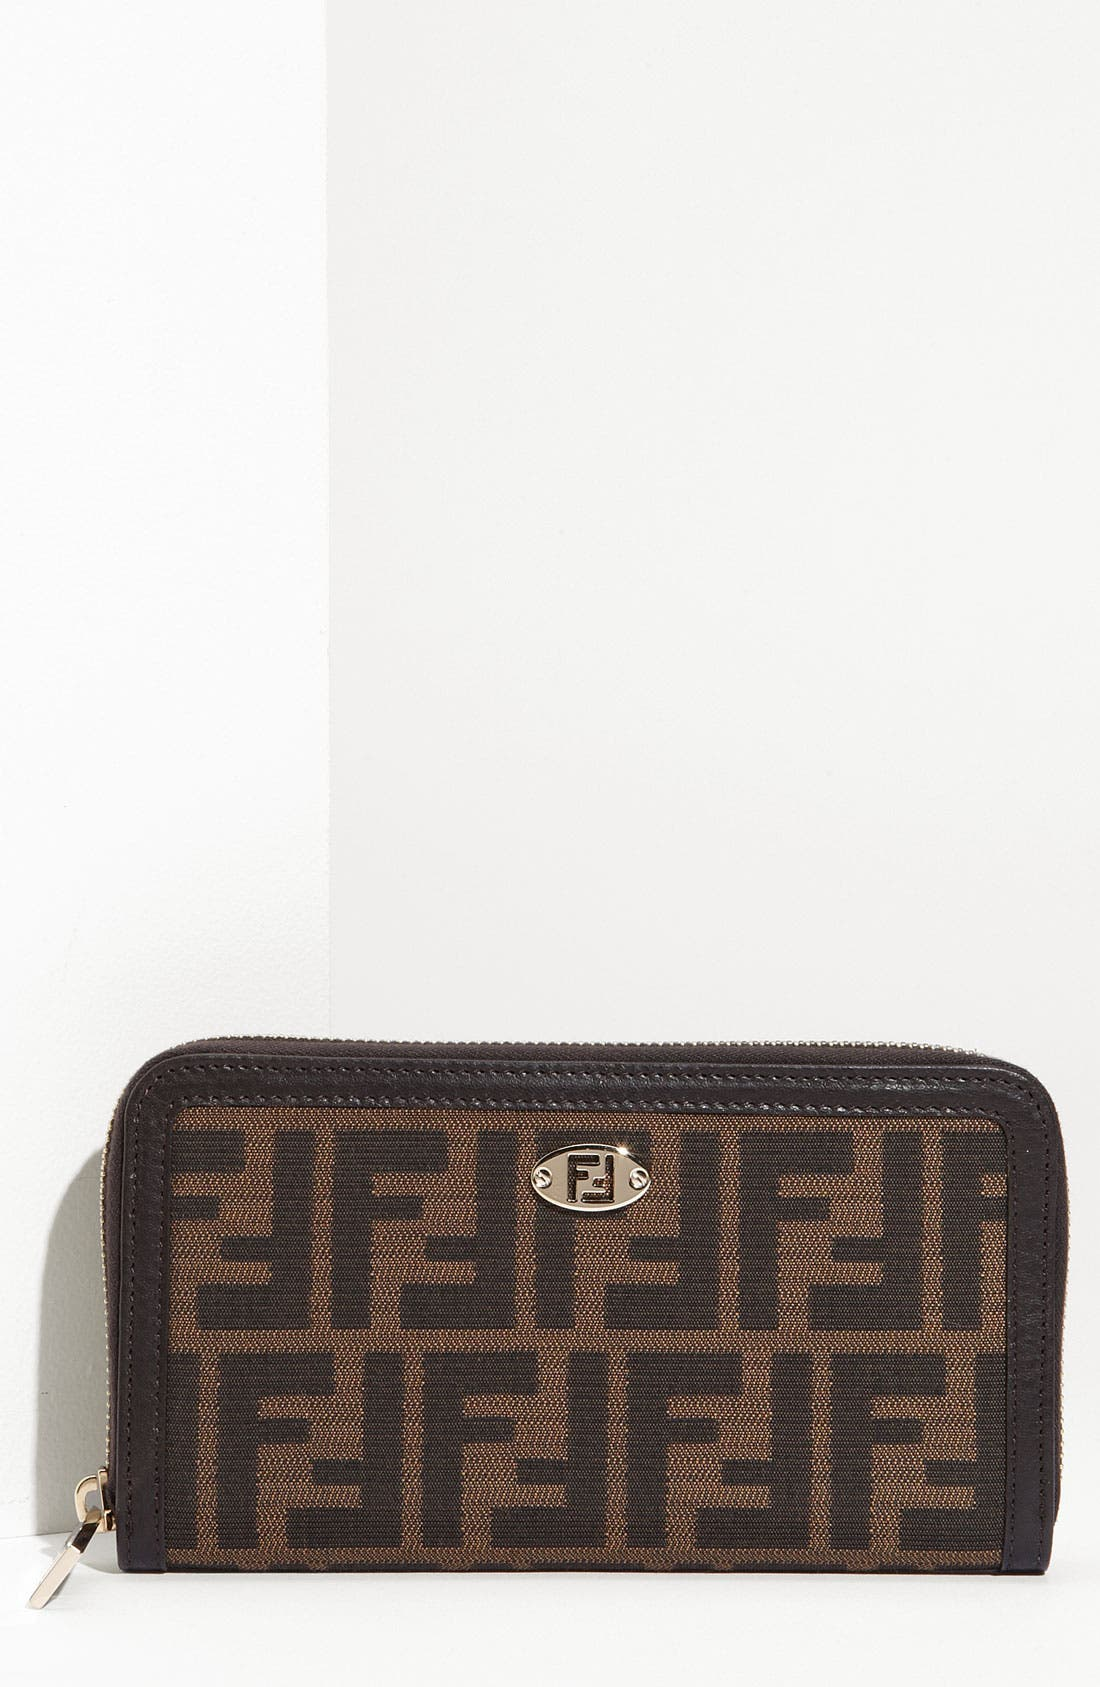 Alternate Image 1 Selected - Fendi 'Zucca' Zip Around Wallet